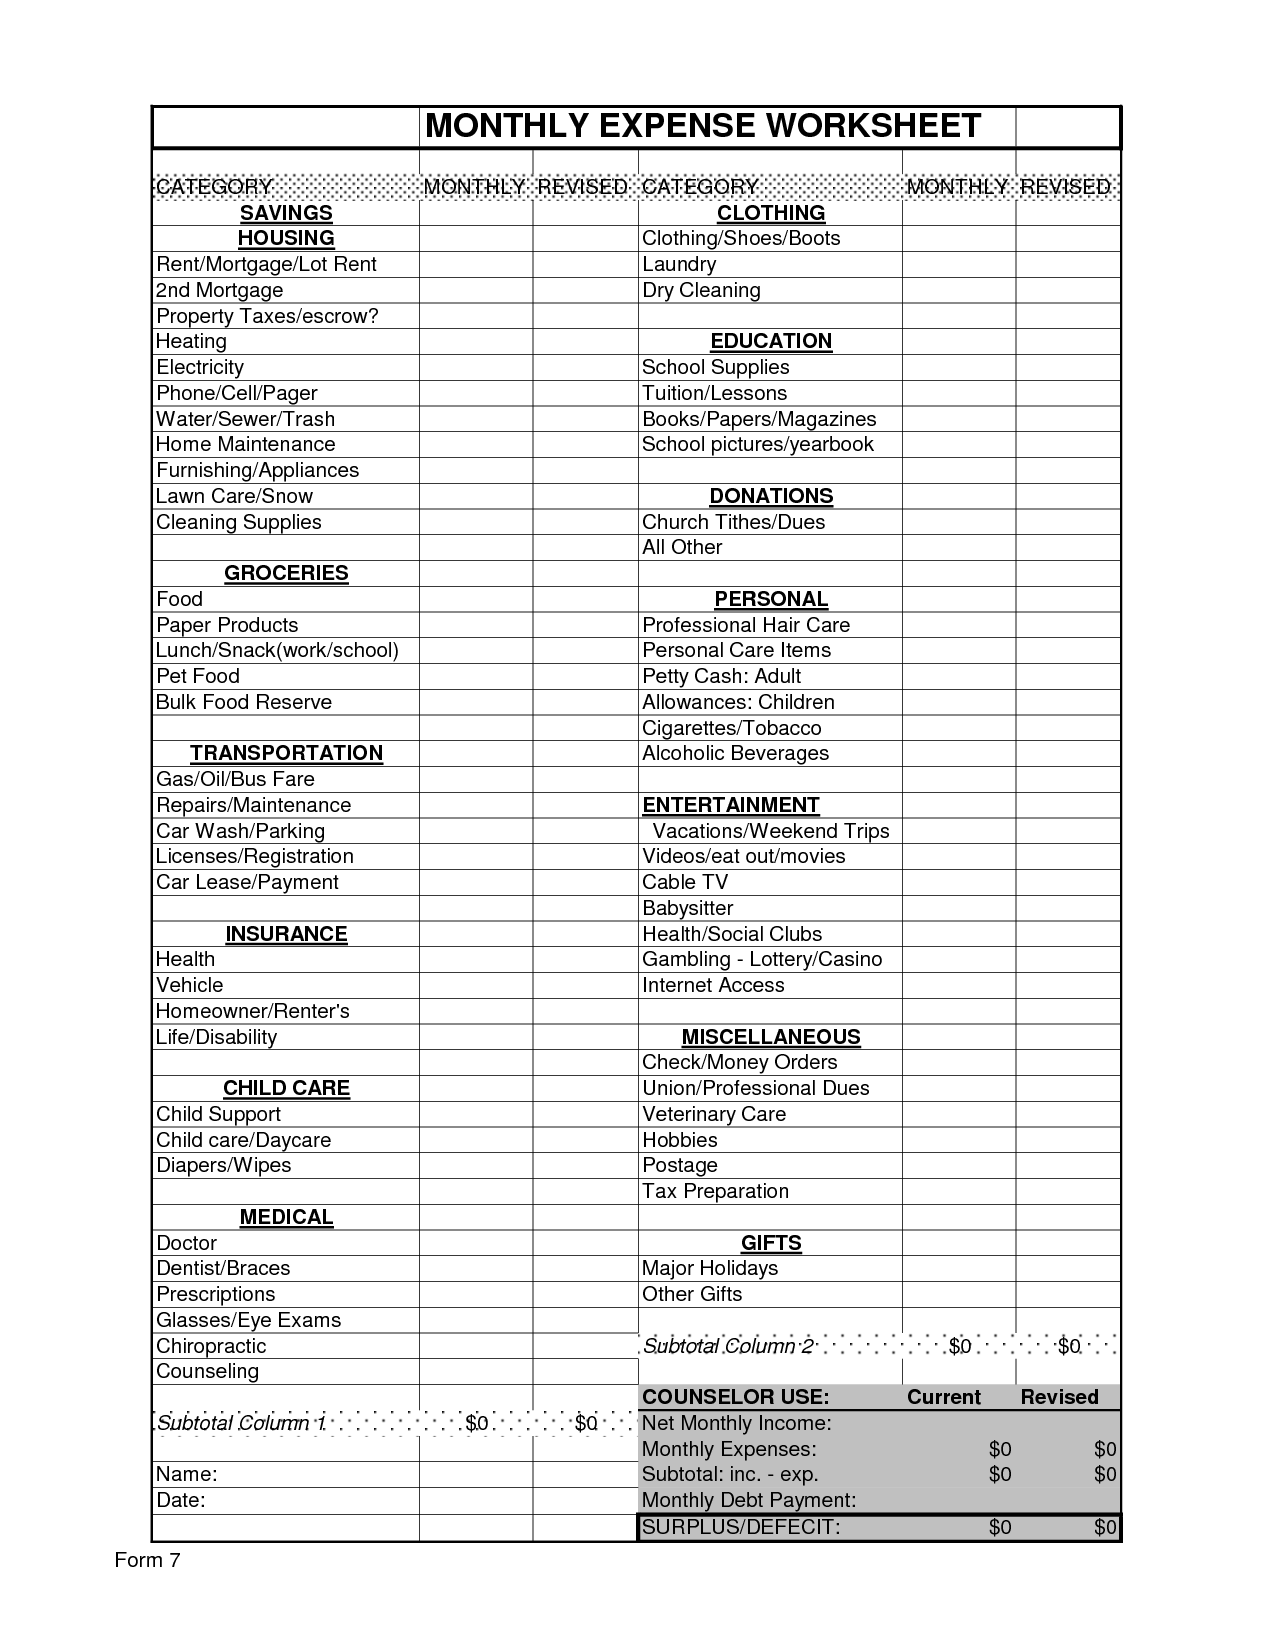 10 Best Images Of Monthly Income Budget Worksheet